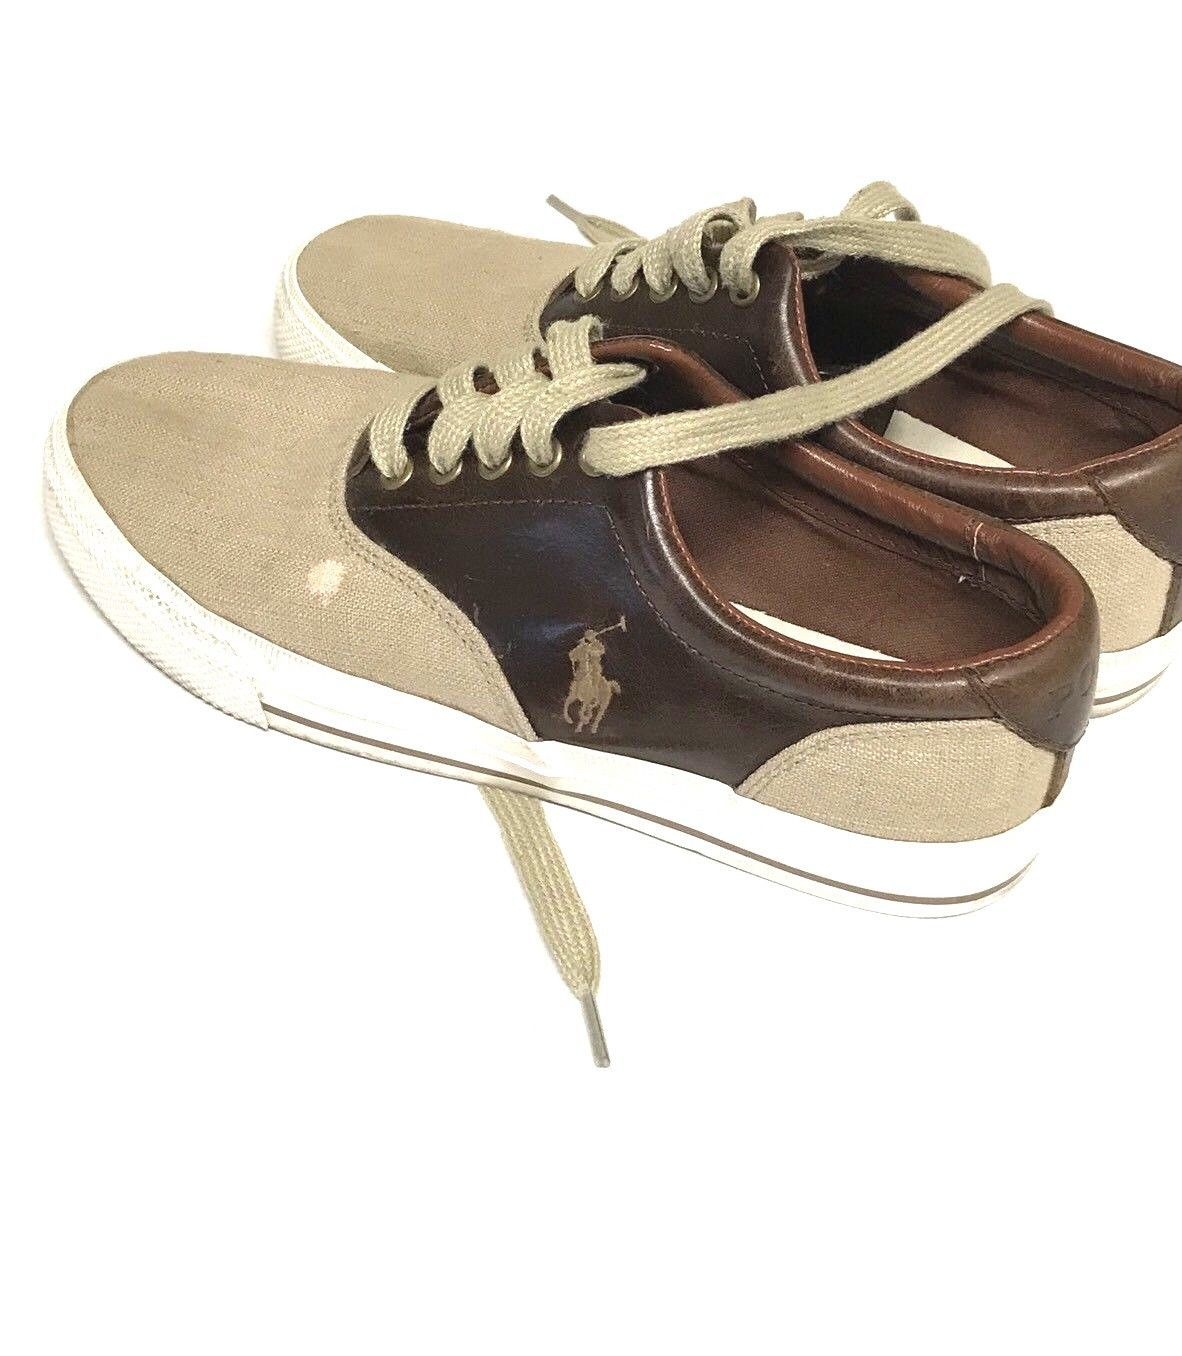 Polo Ralph Lauren Vaughn Canvas/Leather Sneakers Shoes